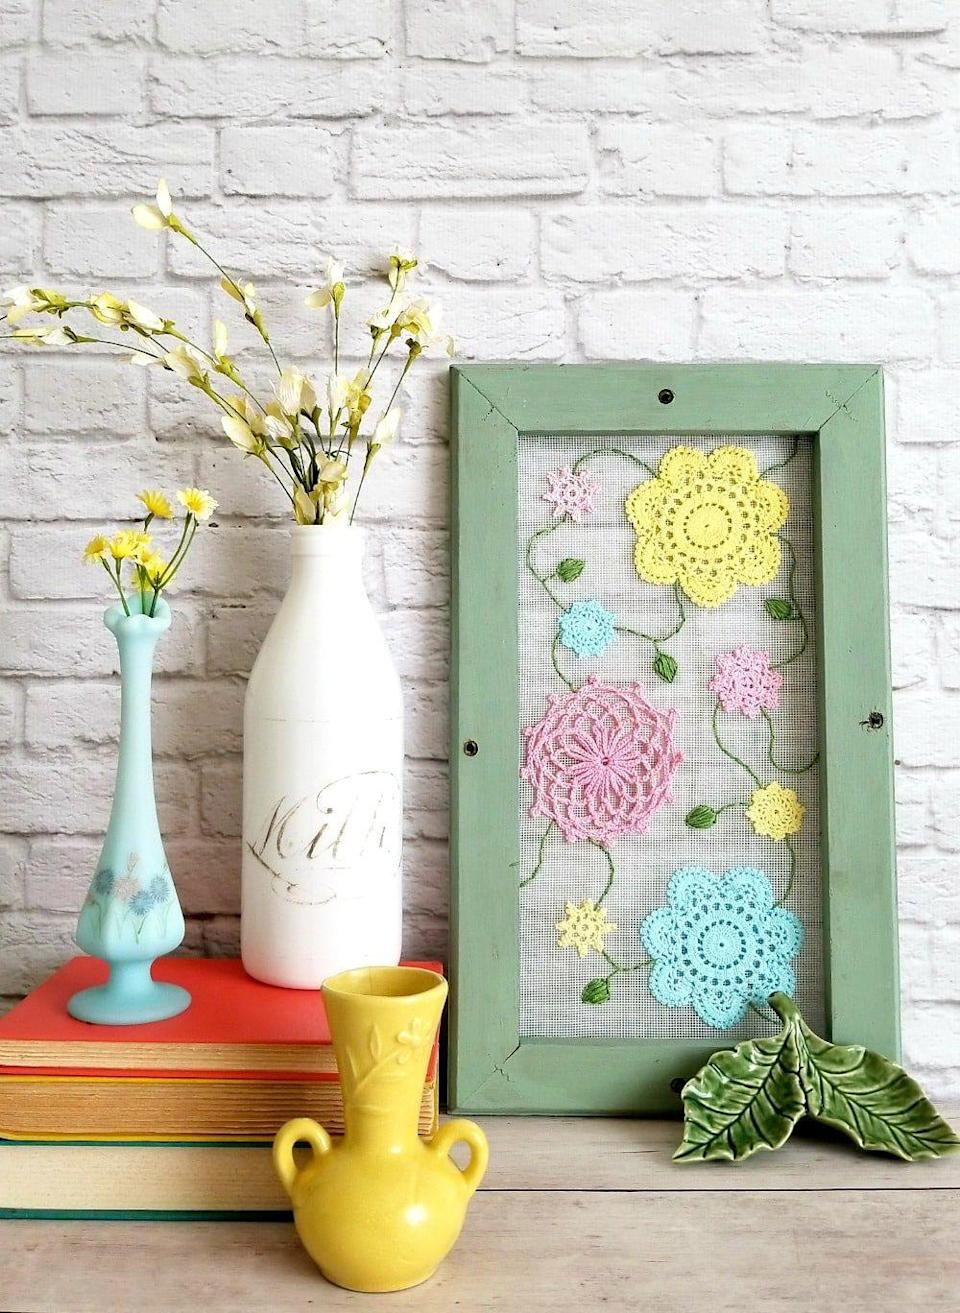 """<p>Add screen mesh to a cute frame from the dollar store to show off pastel paper doilies-turned-flowers.</p><p><em><a href=""""https://www.sadieseasongoods.com/cottage-style-spring-decor/"""" rel=""""nofollow noopener"""" target=""""_blank"""" data-ylk=""""slk:Get the tutorial at Sadies Seasonsgoods »"""" class=""""link rapid-noclick-resp"""">Get the tutorial at Sadies Seasonsgoods »</a></em></p>"""